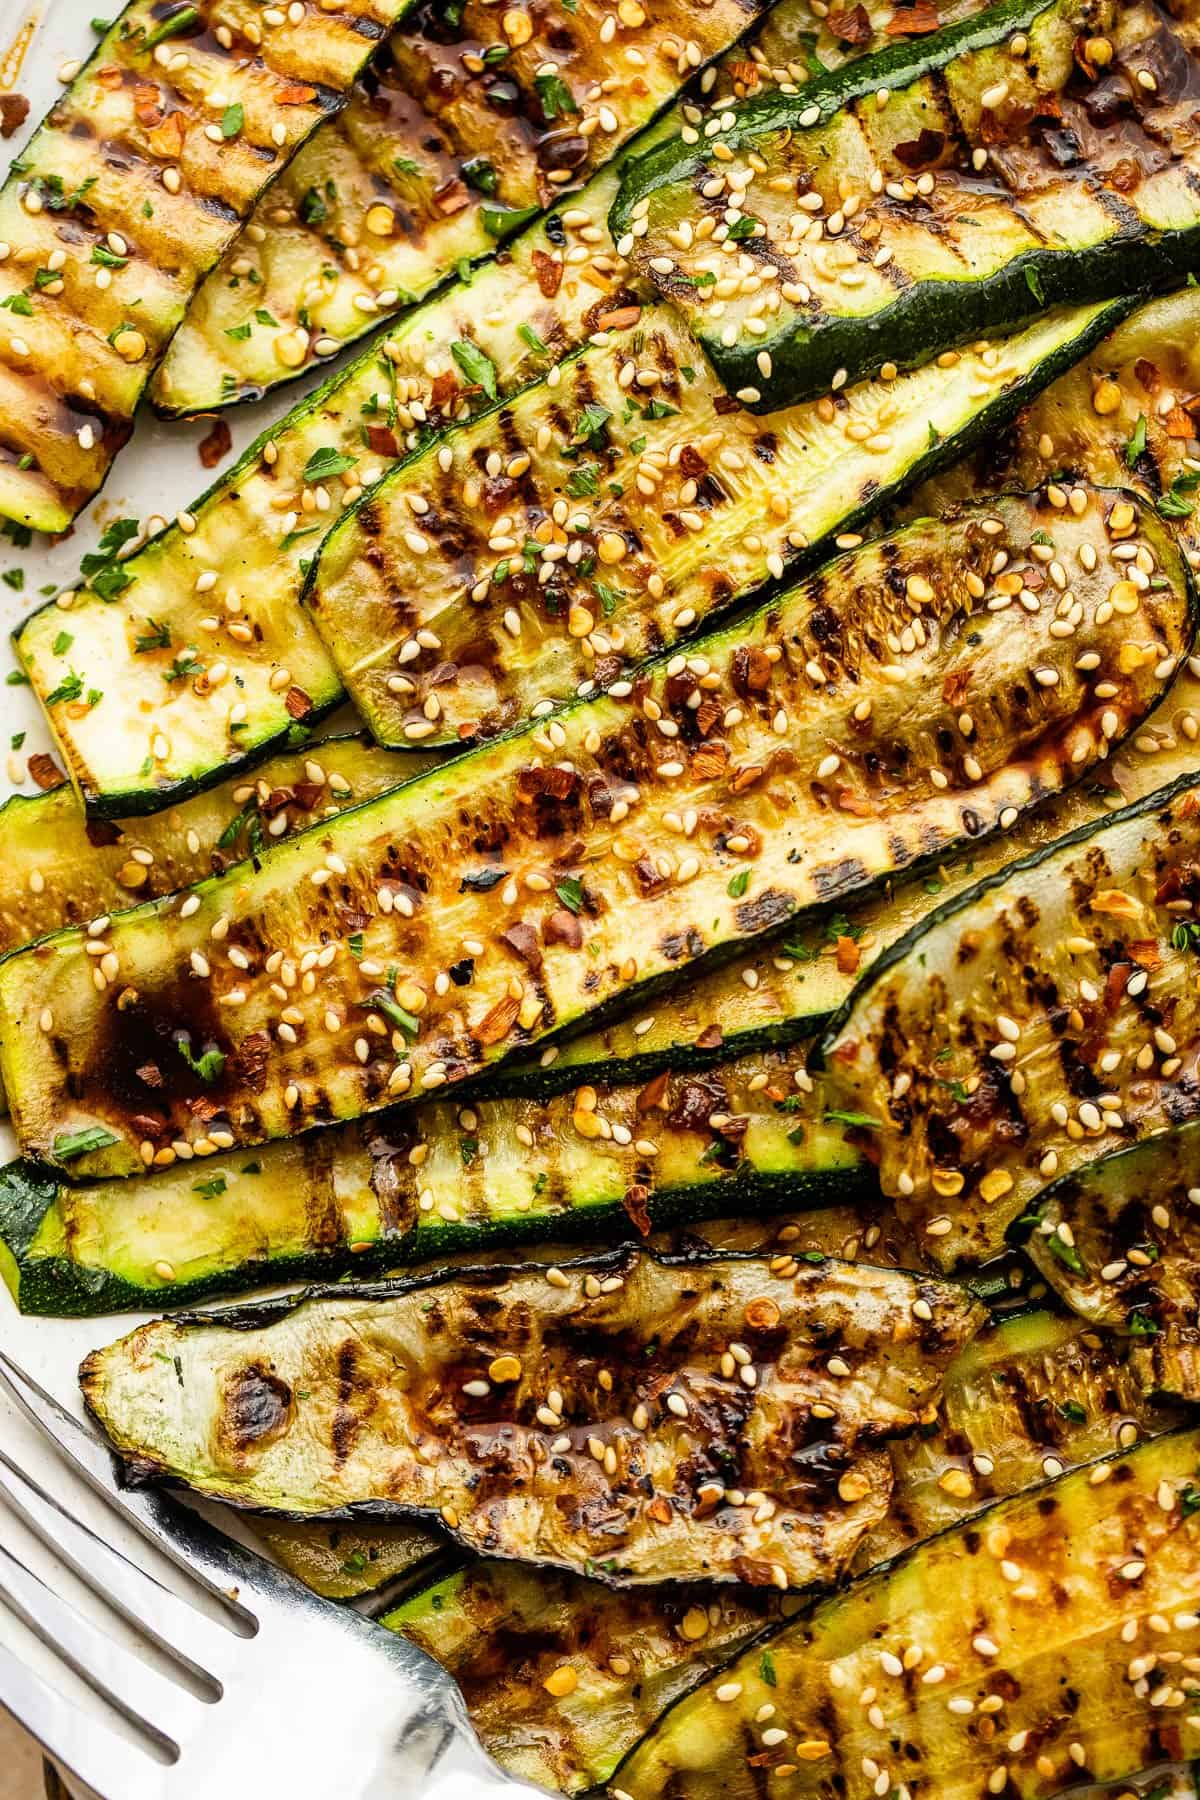 up close shot of grilled zucchini slices